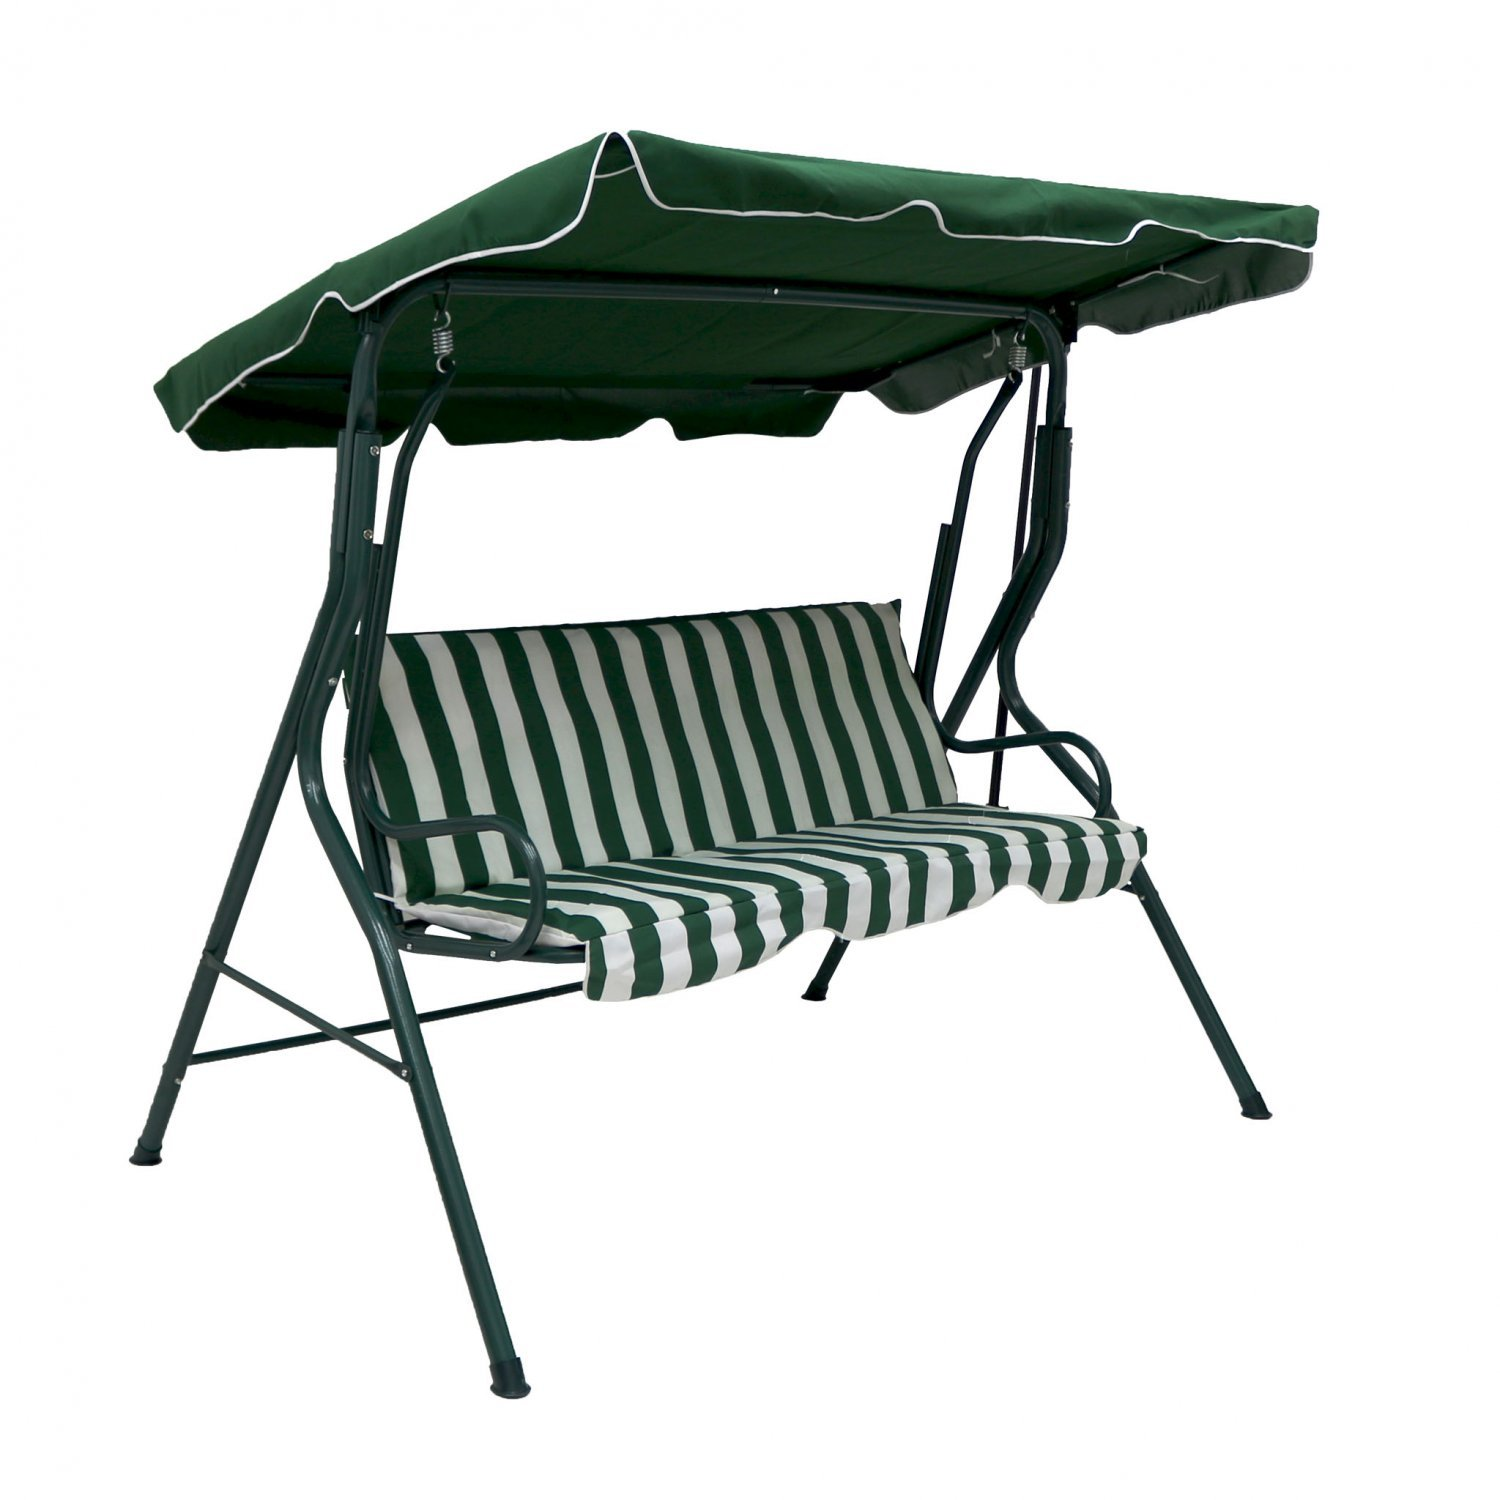 NEW! Portable Beach Mat Folding Chair Sun Lounger Outdoor ...